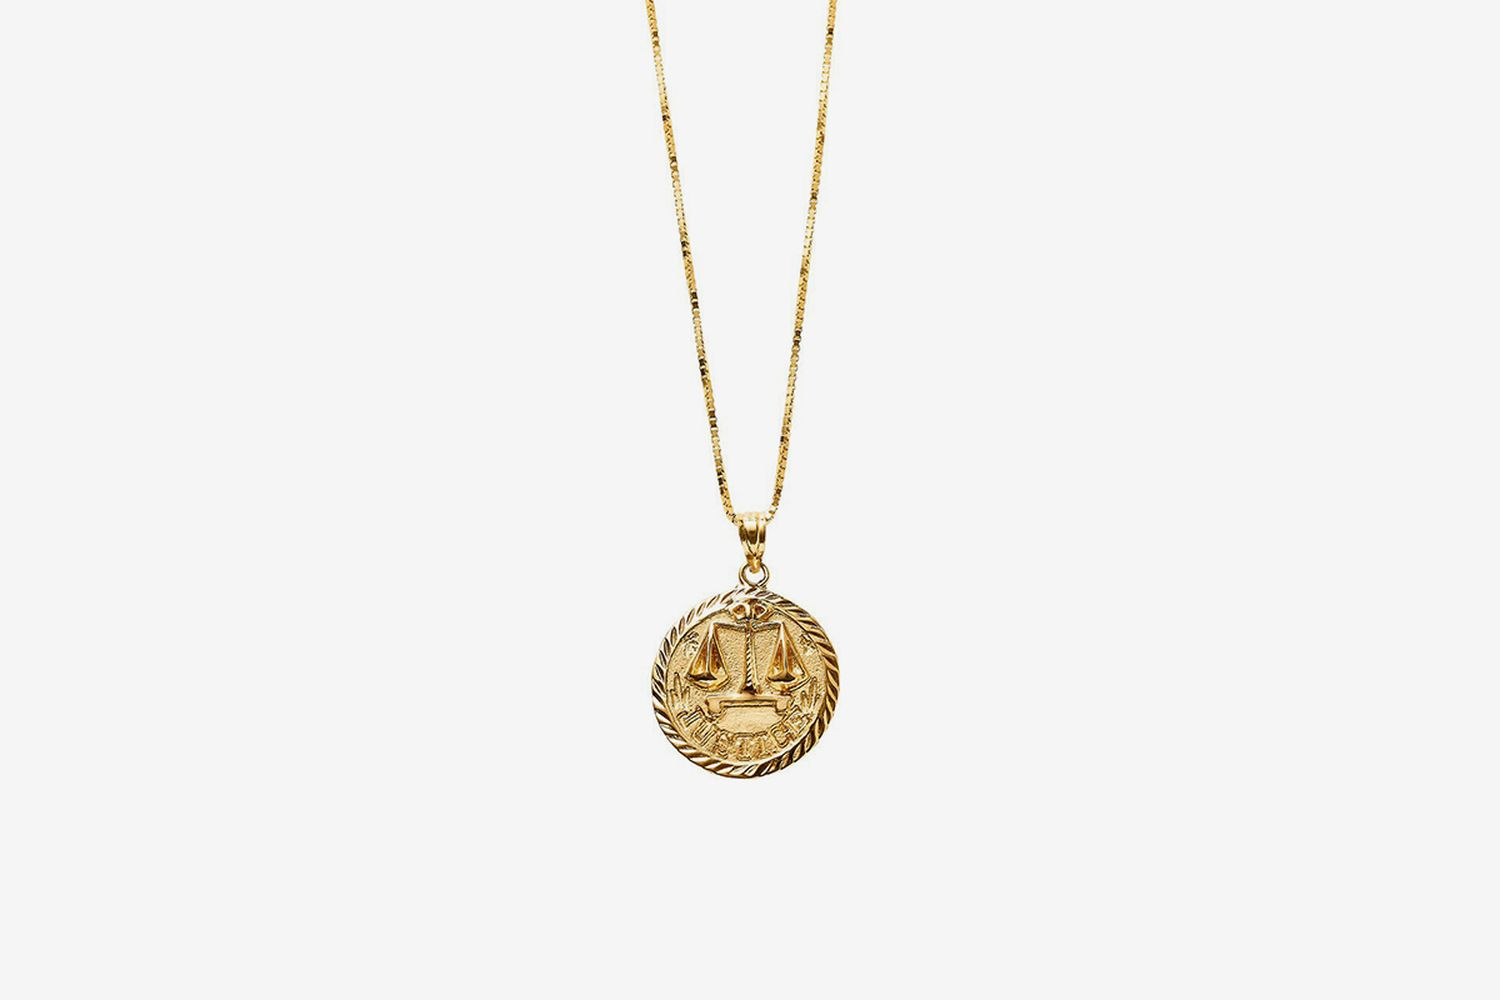 Justice Gold Pendant